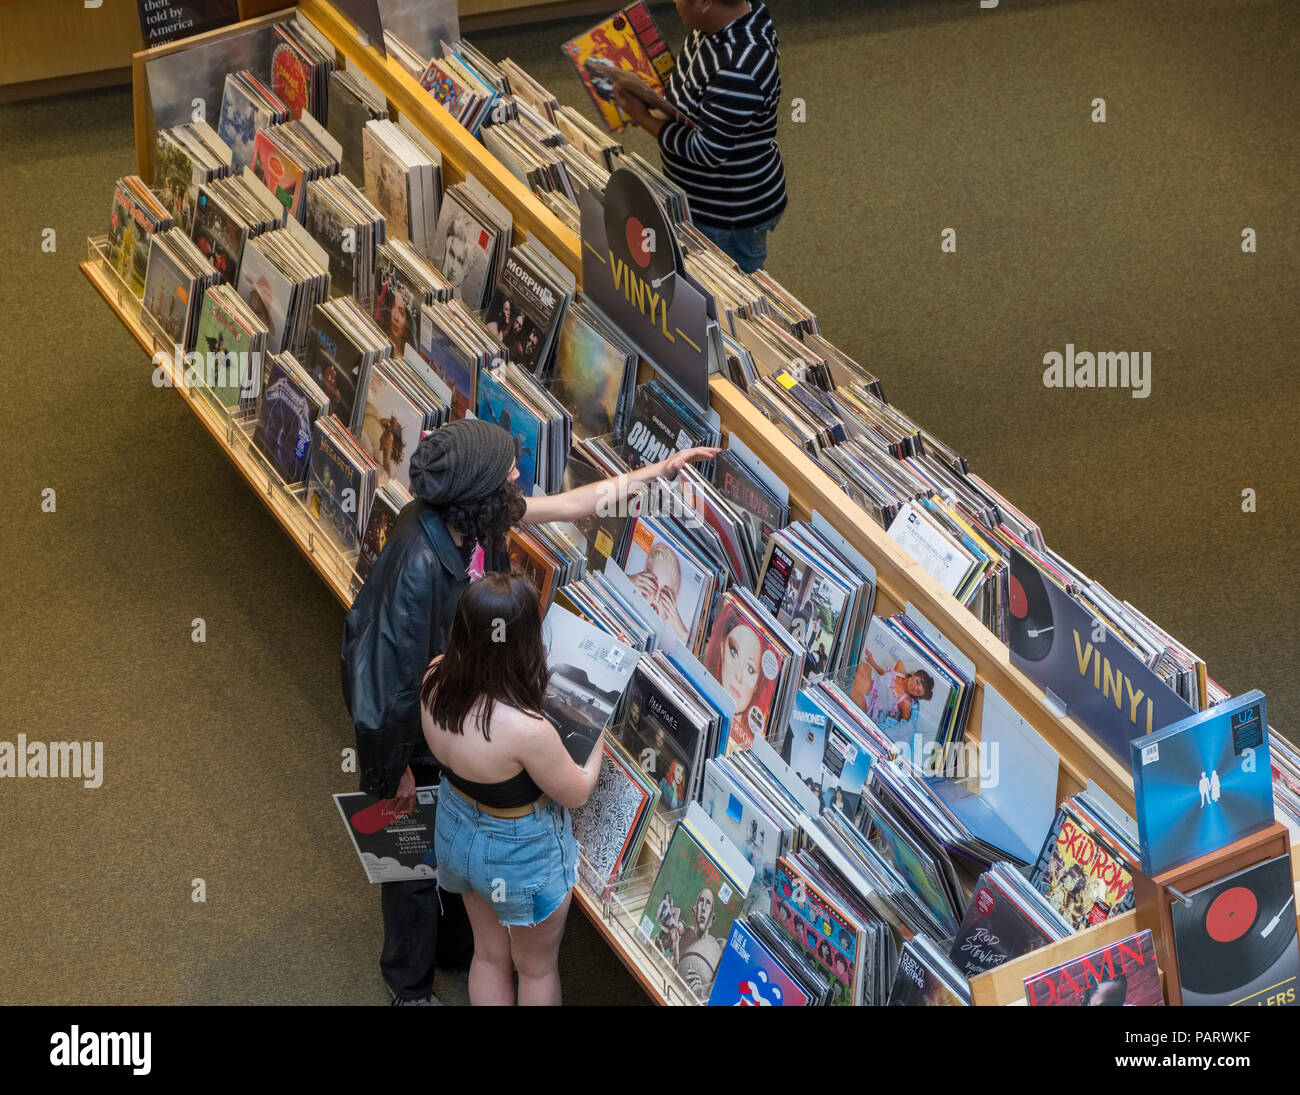 People browsing vinyl records and albums in racks at a record shop store interior in Los Angeles, LA, California, USA - Stock Image